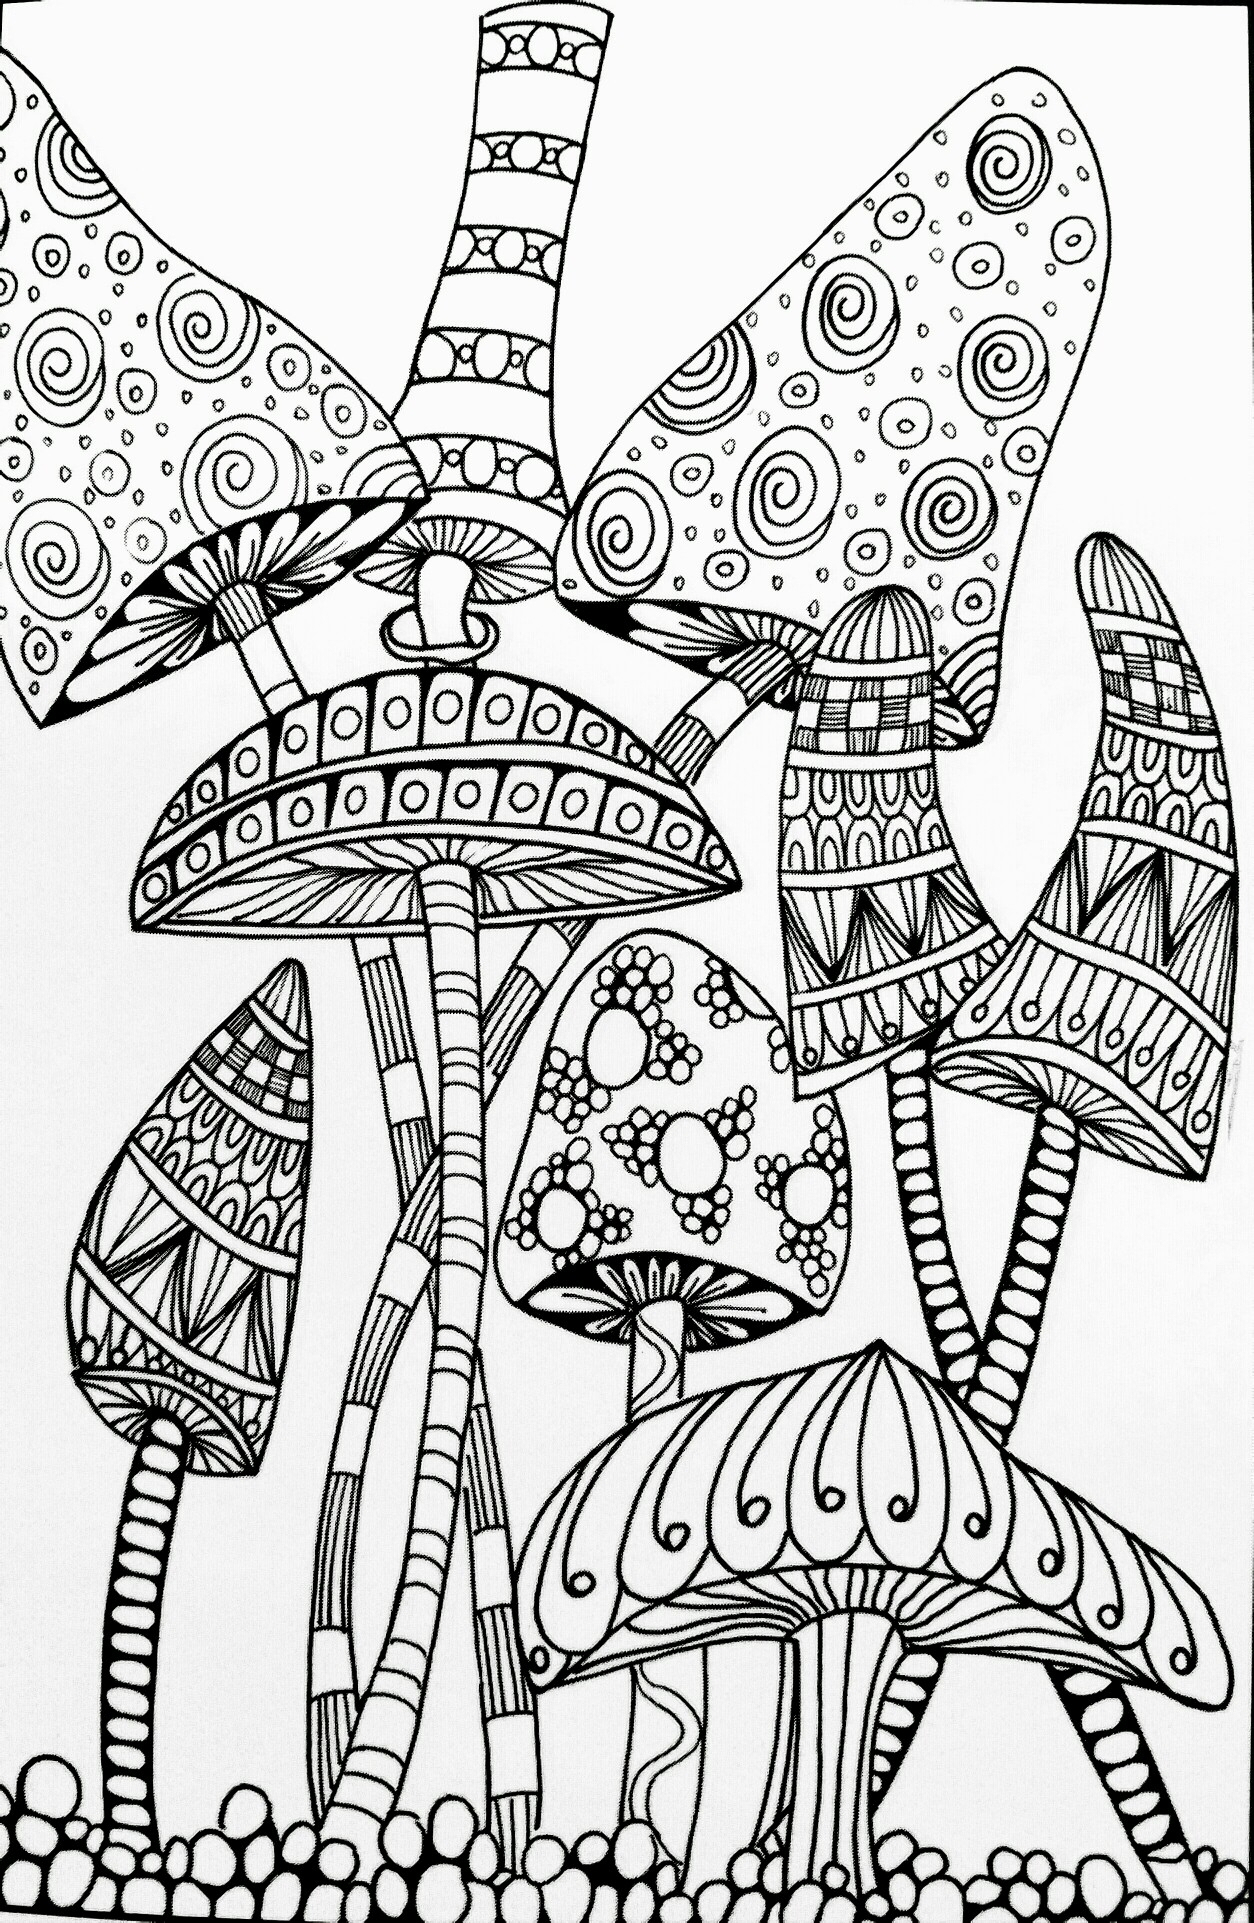 Coloring Pages ~ Cartoon Dragon With Mushroom Coloring Page Free - Free Printable Mushroom Coloring Pages